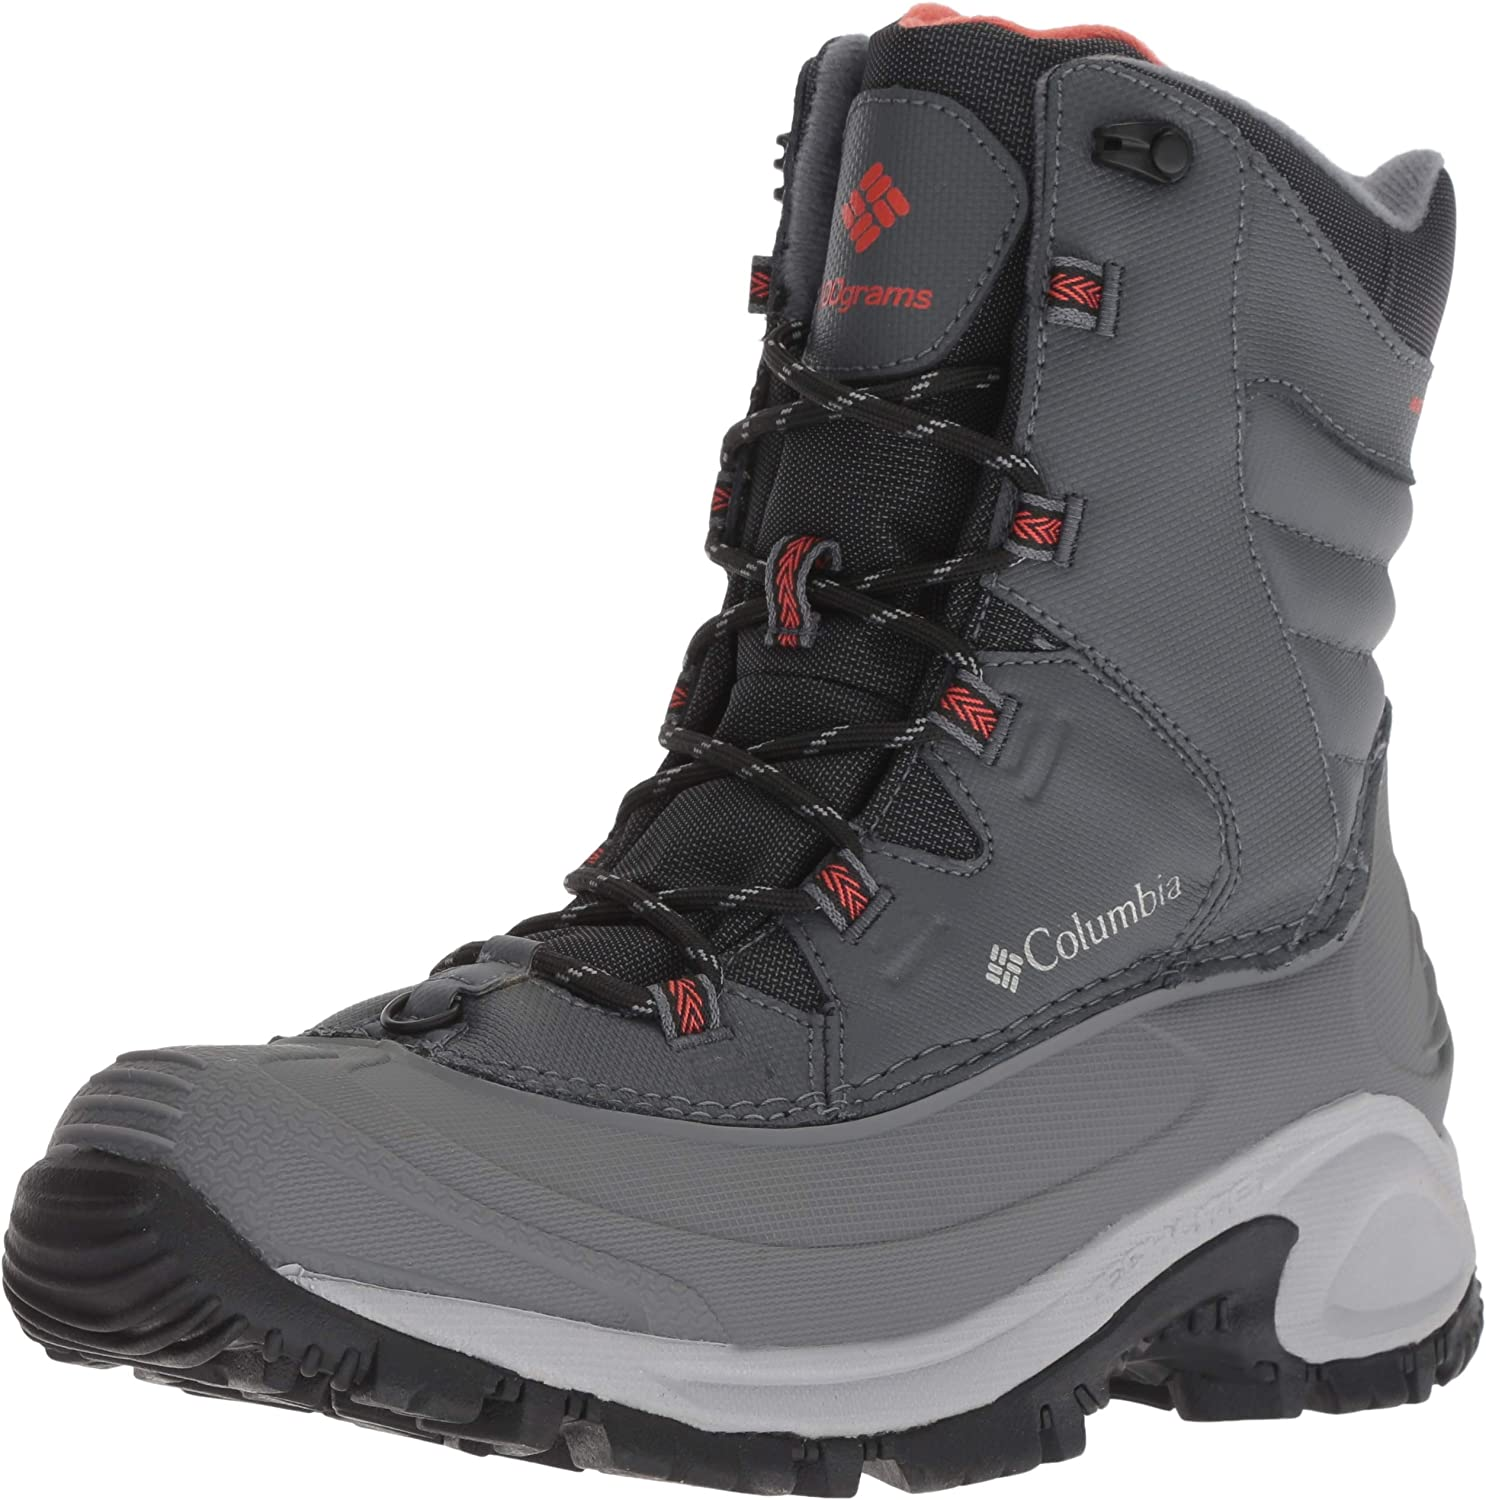 lowest price Columbia Bugaboot Iii Womens Max 81% OFF Boot -